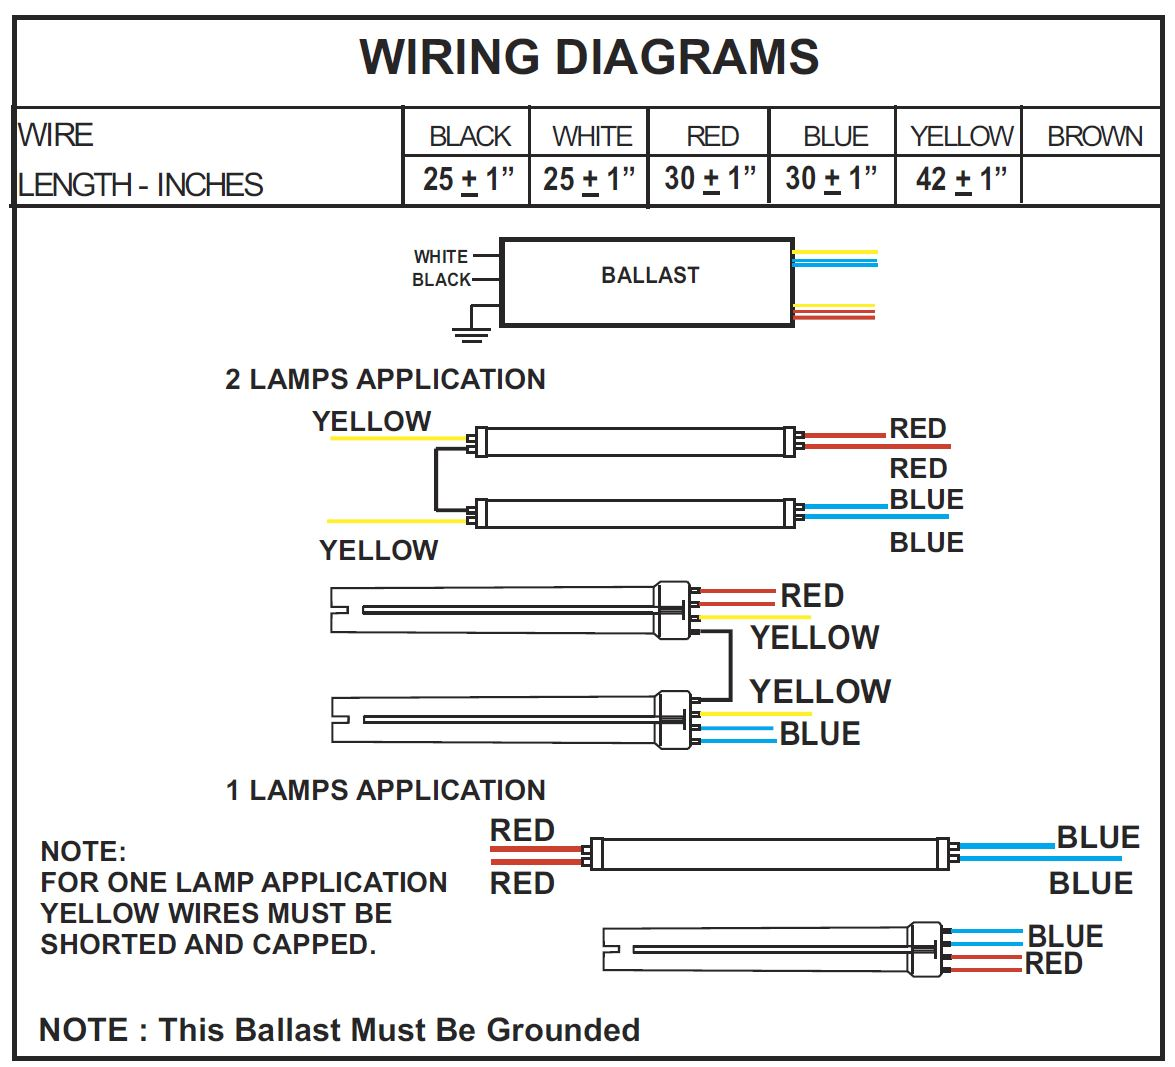 volvo s60 light diagram volvo wiring diagram free